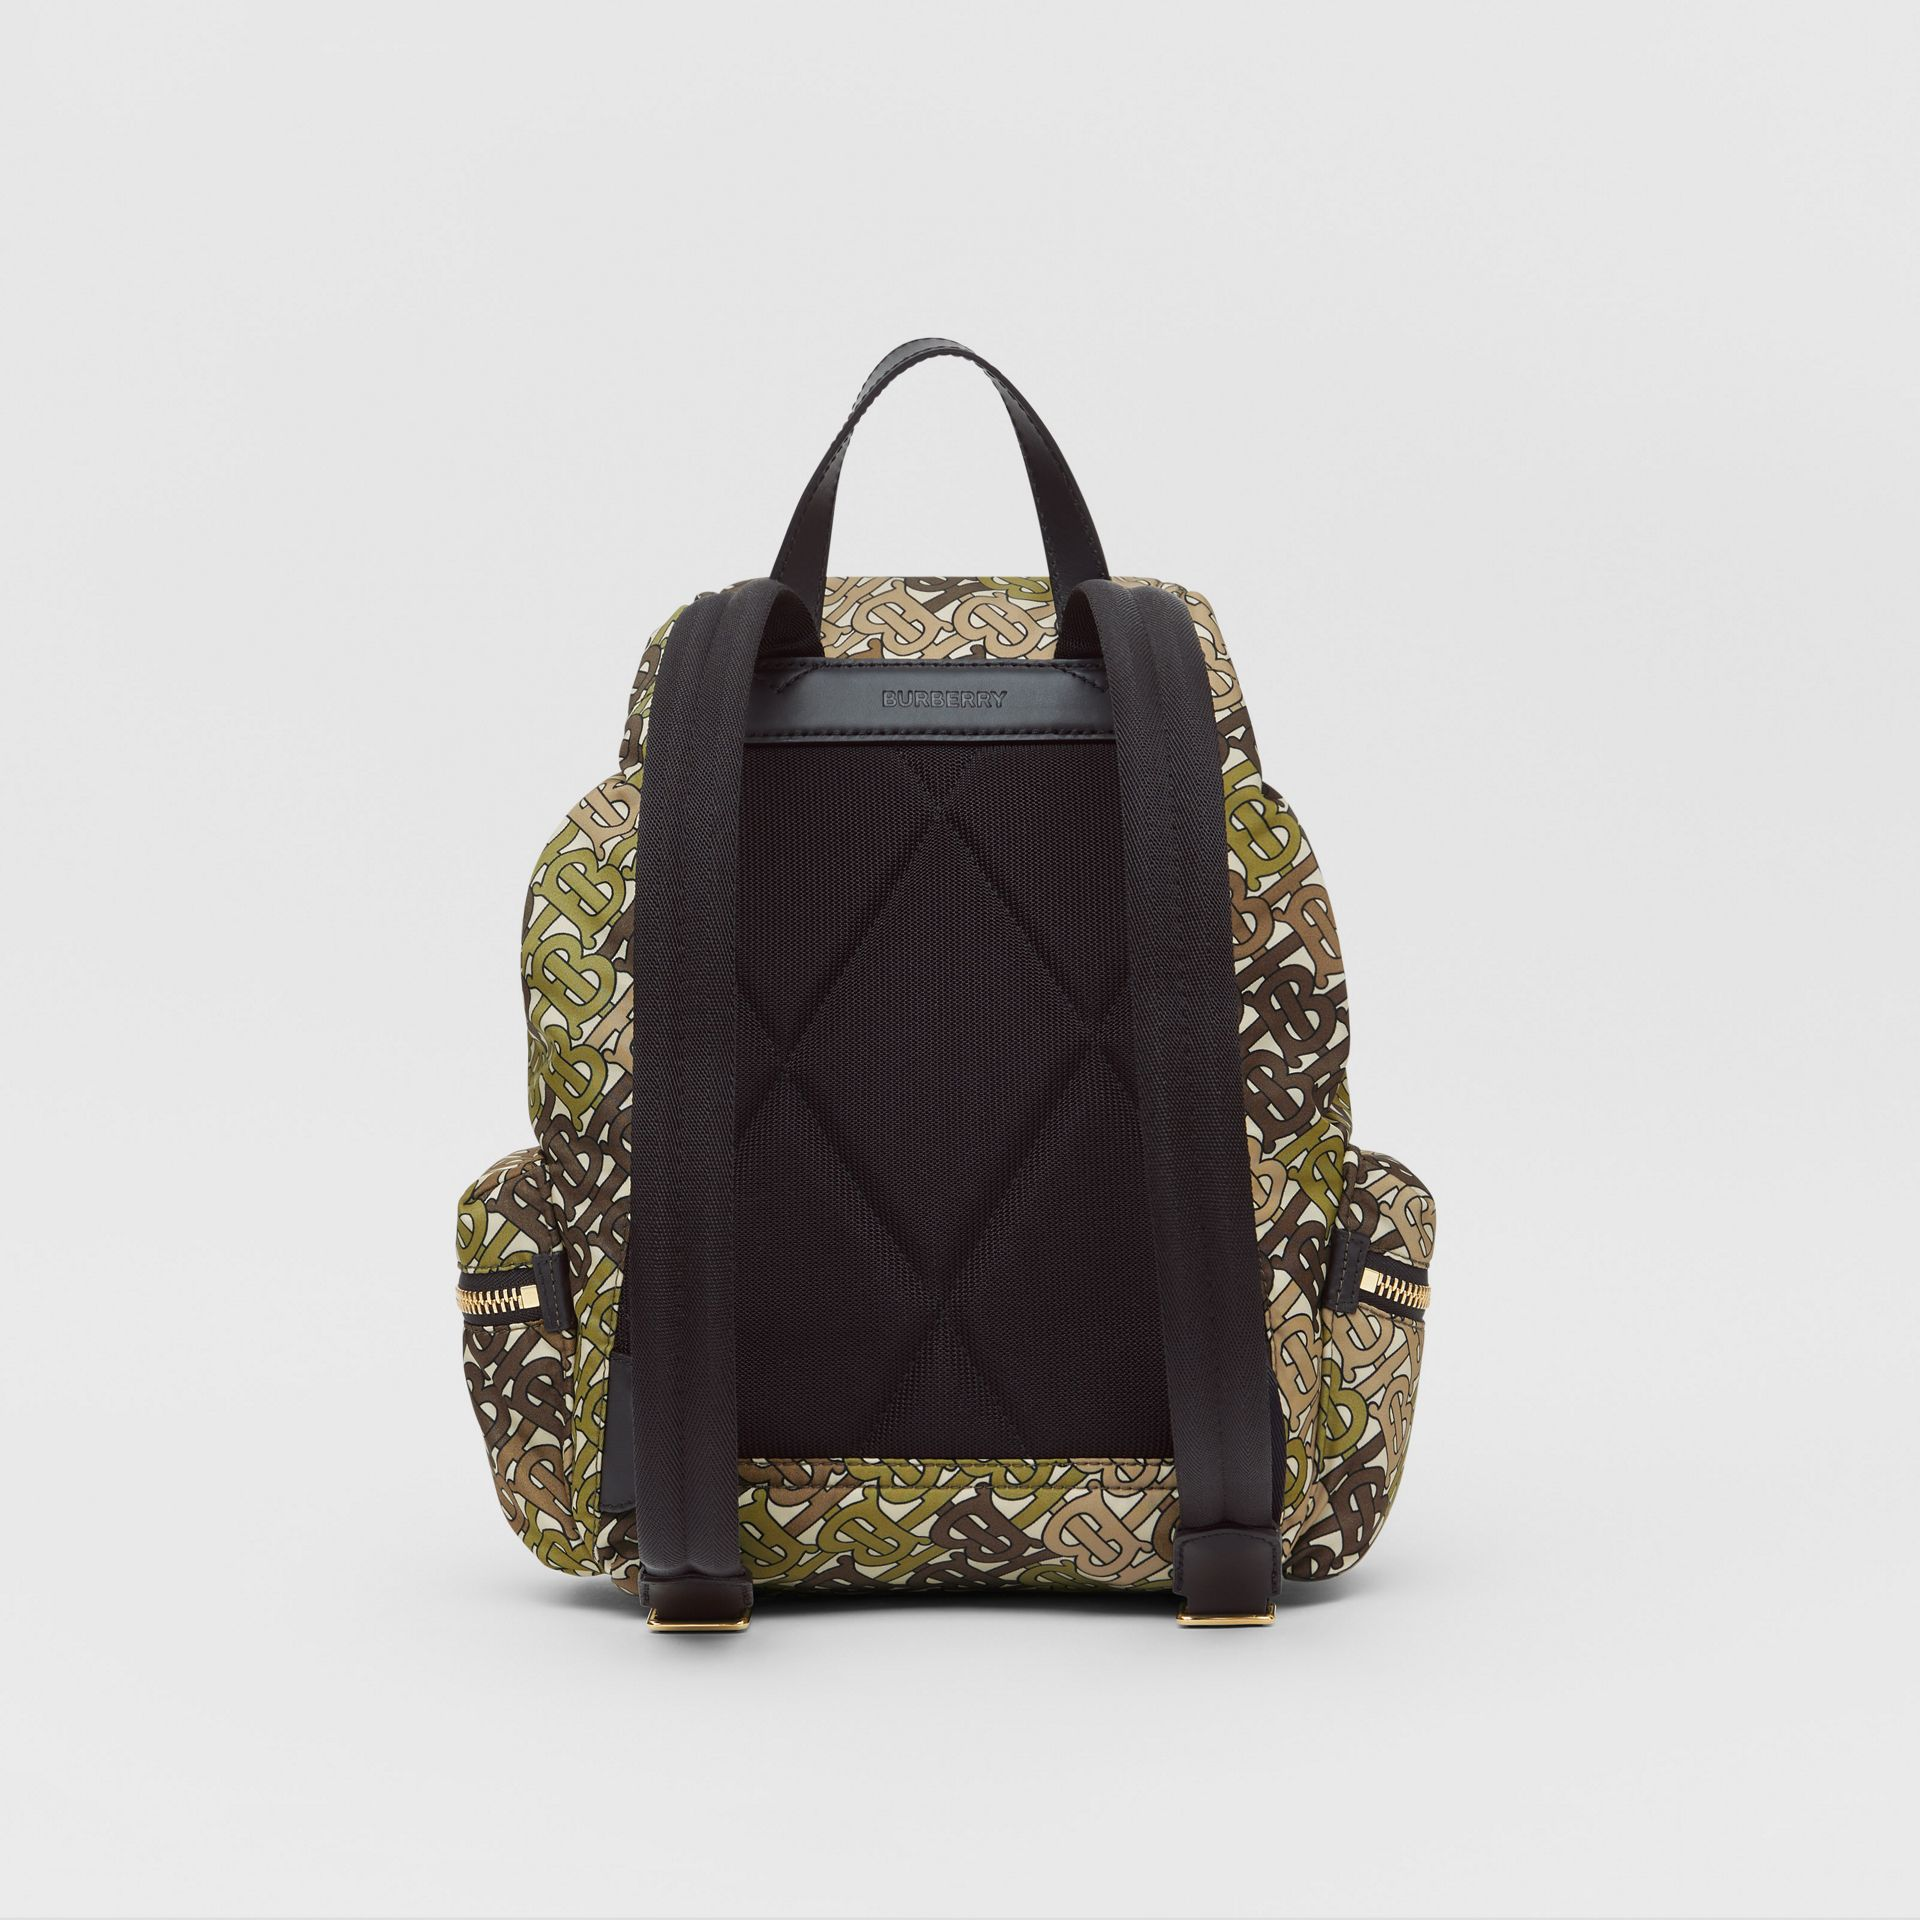 Sac The Rucksack moyen en nylon Monogram (Vert Kaki) - Femme | Burberry - photo de la galerie 7